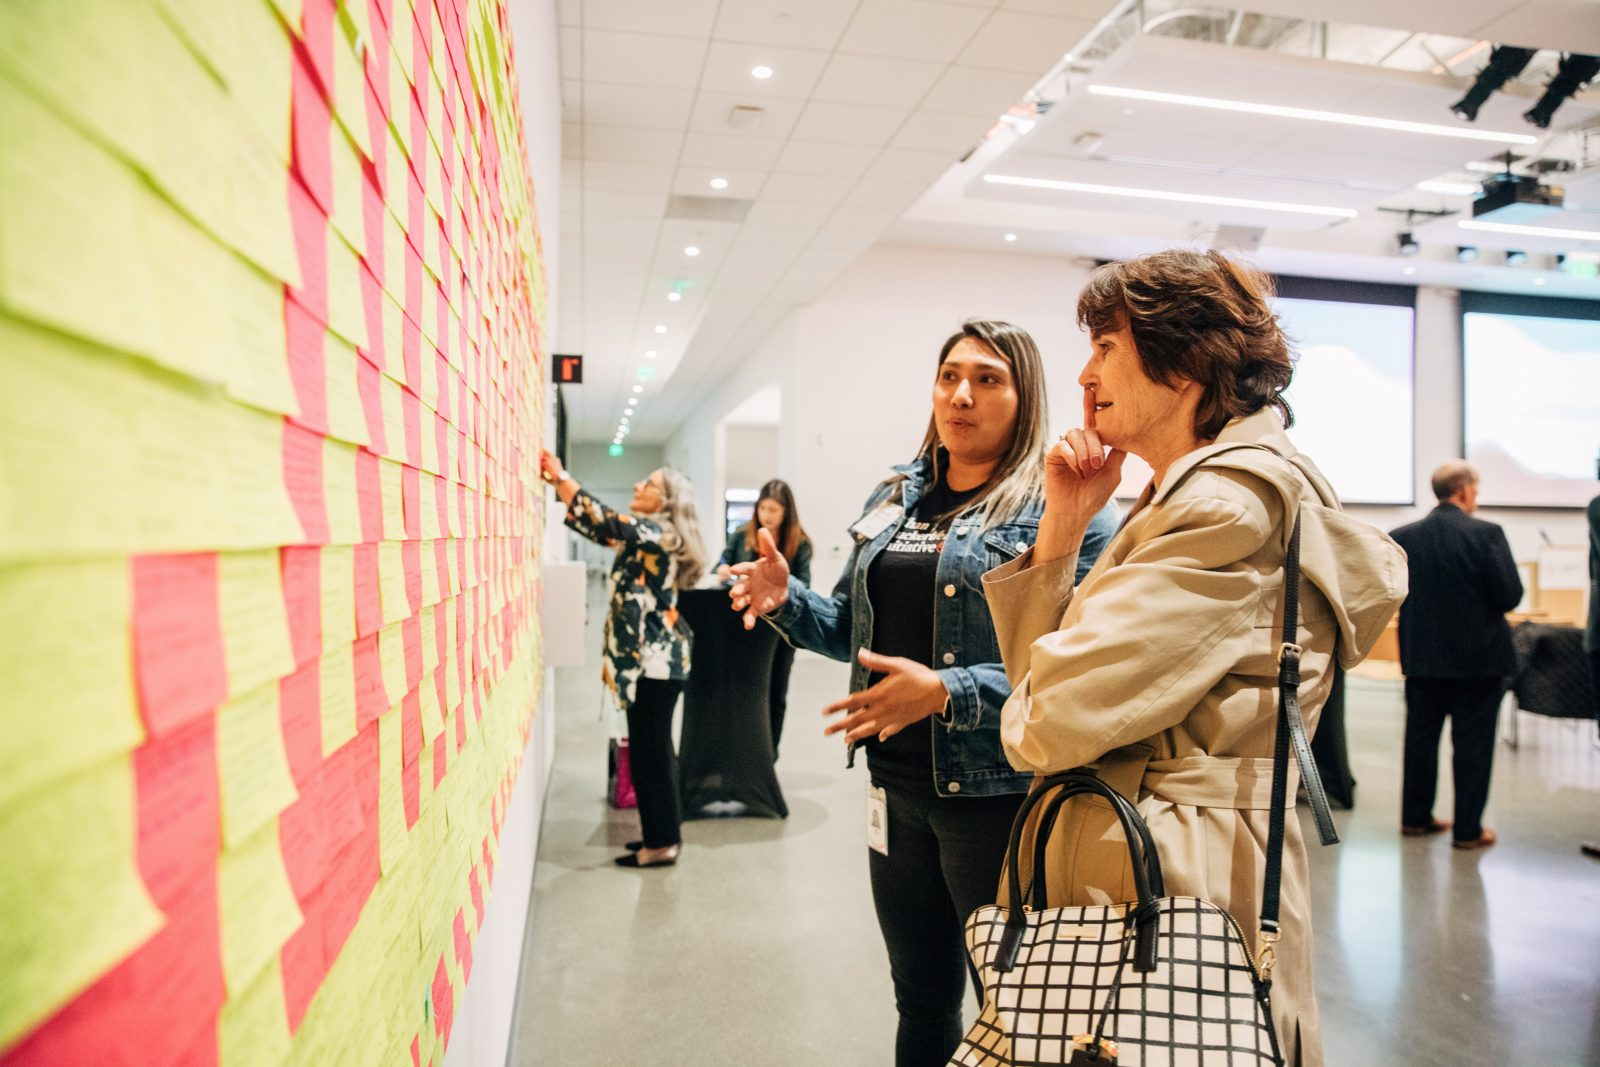 CZI Community team members and guests talking and studying wall of pink and yellow sticky notes, at the CZI Community Space opening in Redwood City.